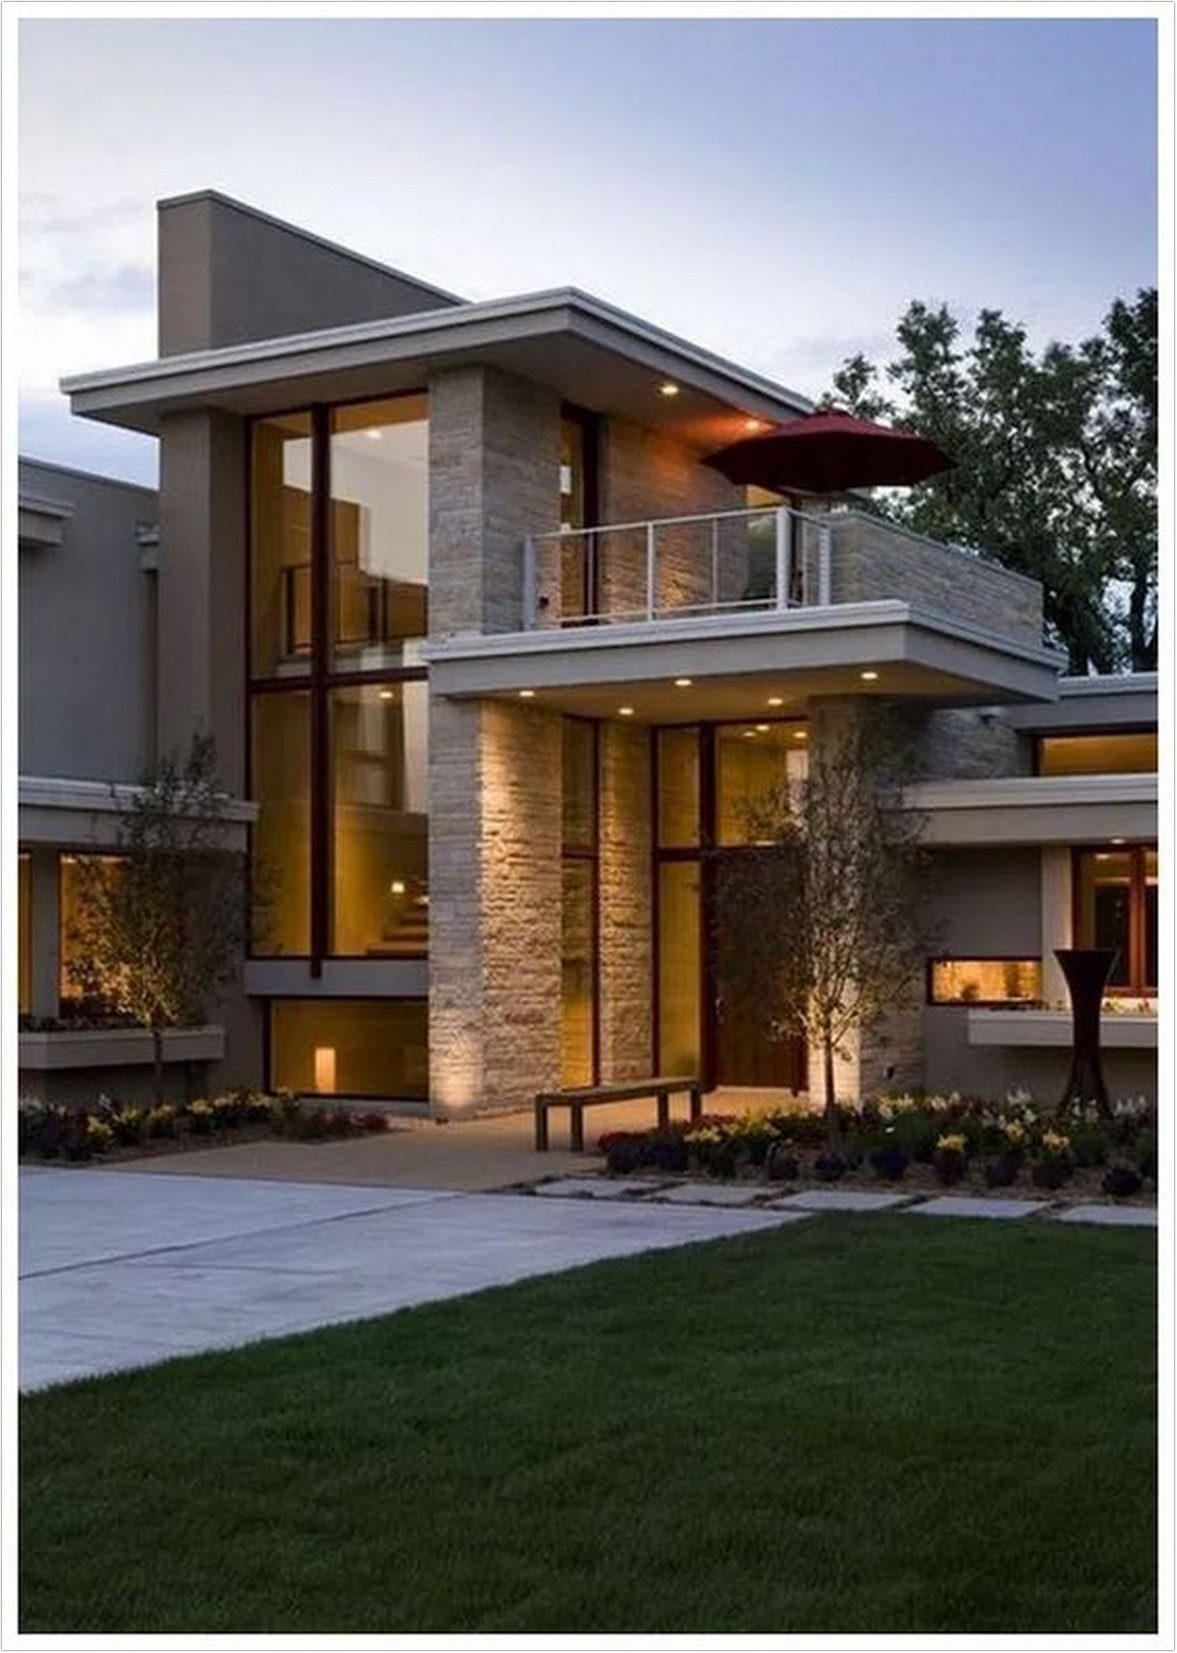 Modern House Designs Photos Inspirational 25 Special Edition Modern House Design for Your 2020